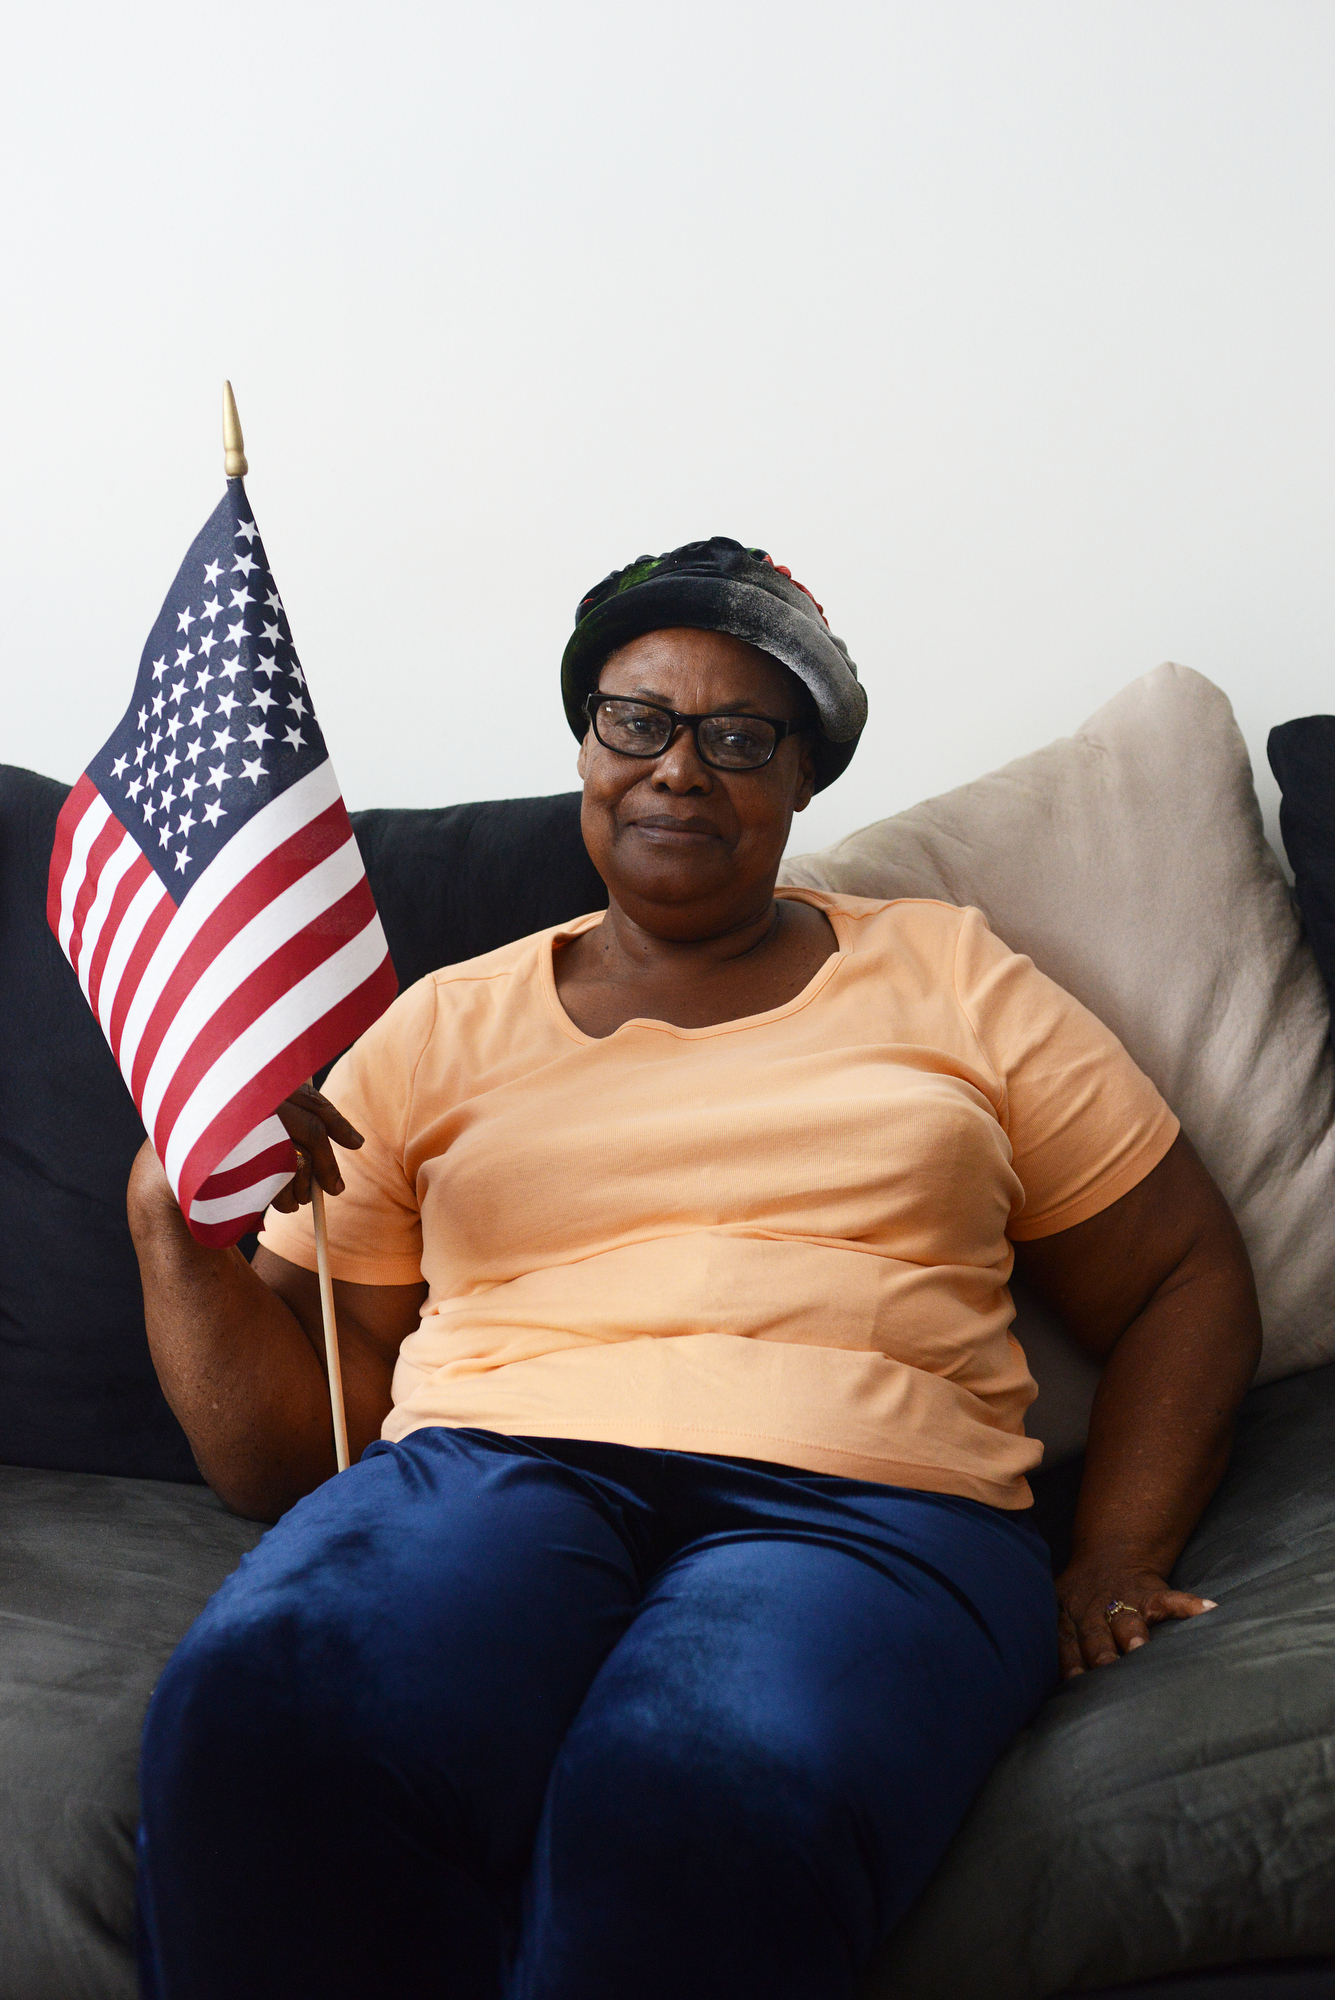 Gloria Murray, an older Jamaican immigrant, holds a small US flag on the day she became a citizen